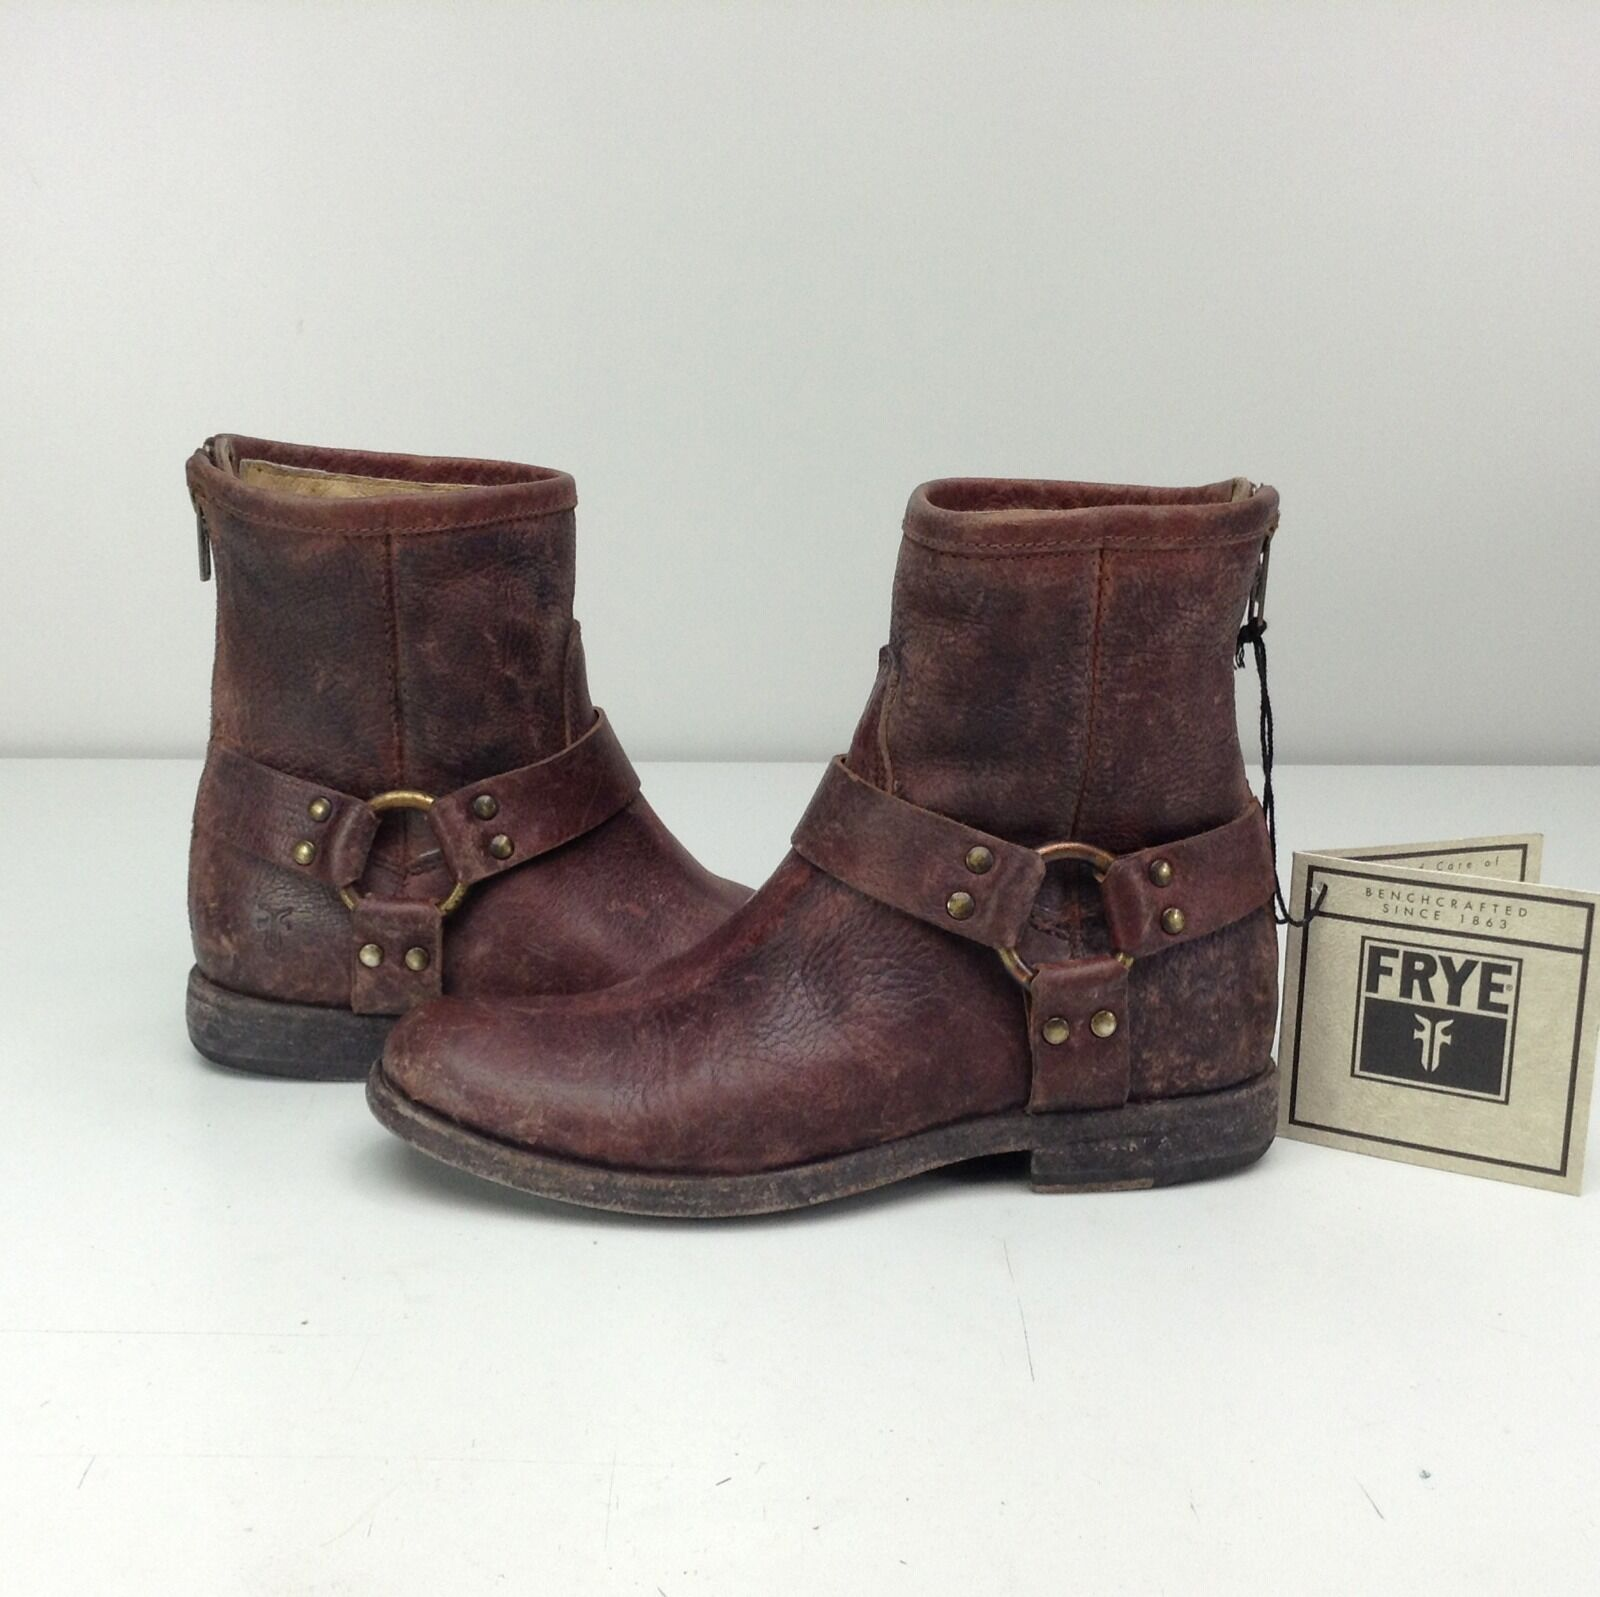 FRYE Phillip Harness Dark Braun Stone Distressed Moto Cowboy Stiefel 5.5 Ankle